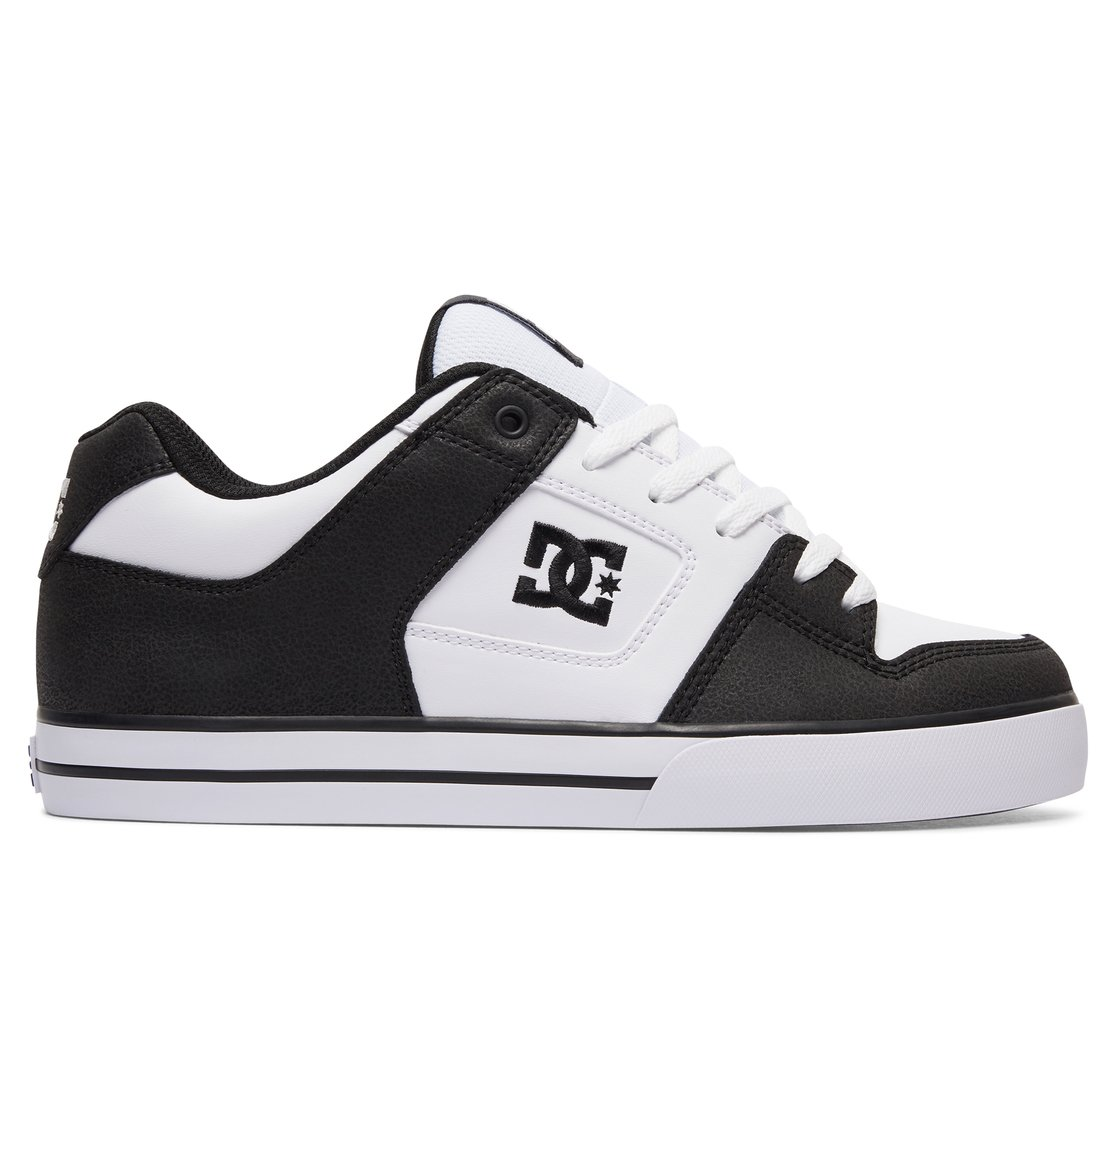 DC Shoes Men's Pure M Low Top Shoes White Black (XKWK) 11 kUXR8oZH